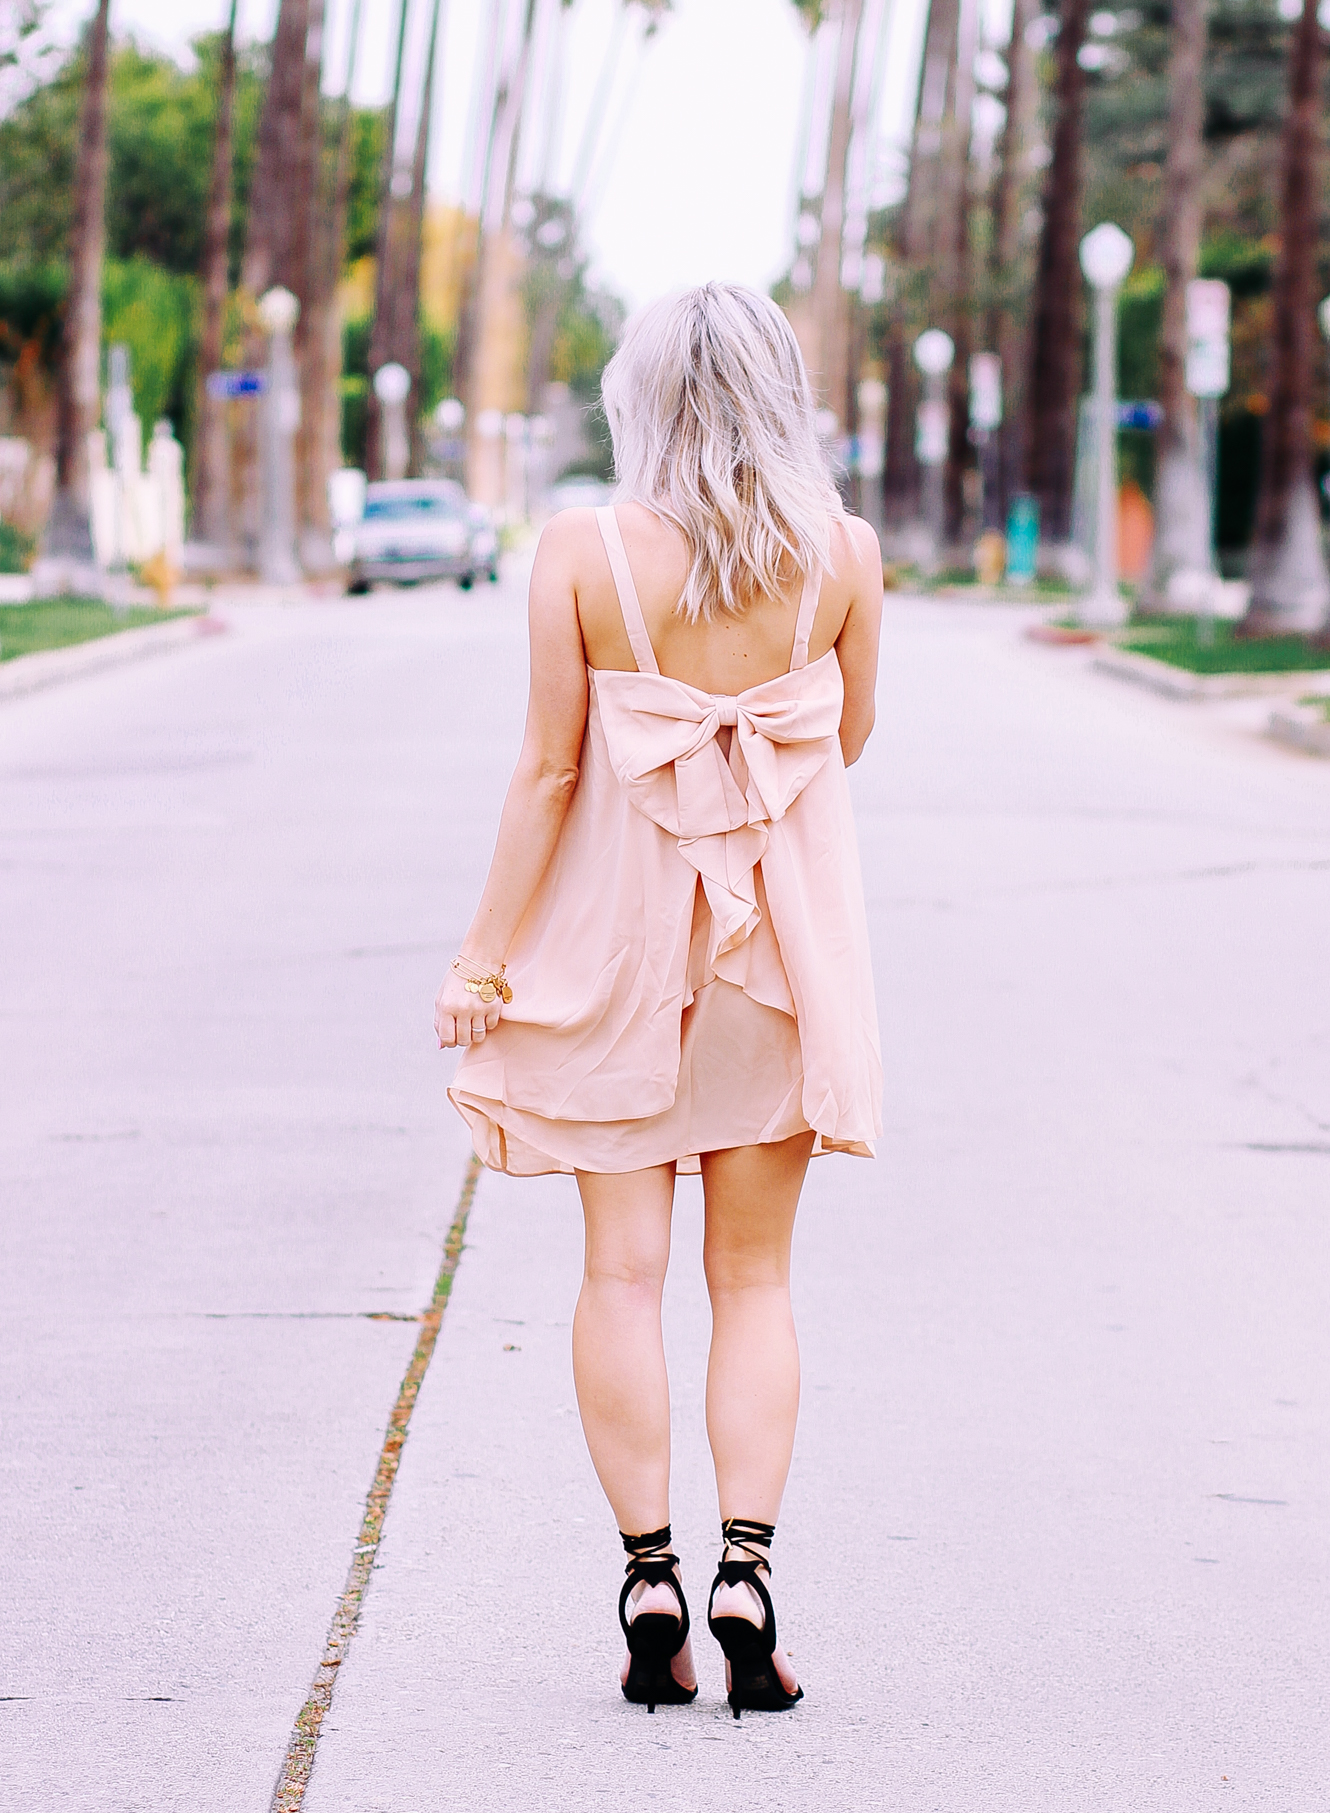 Blondie in the City | 4 Flowy Dresses You Need This Summer